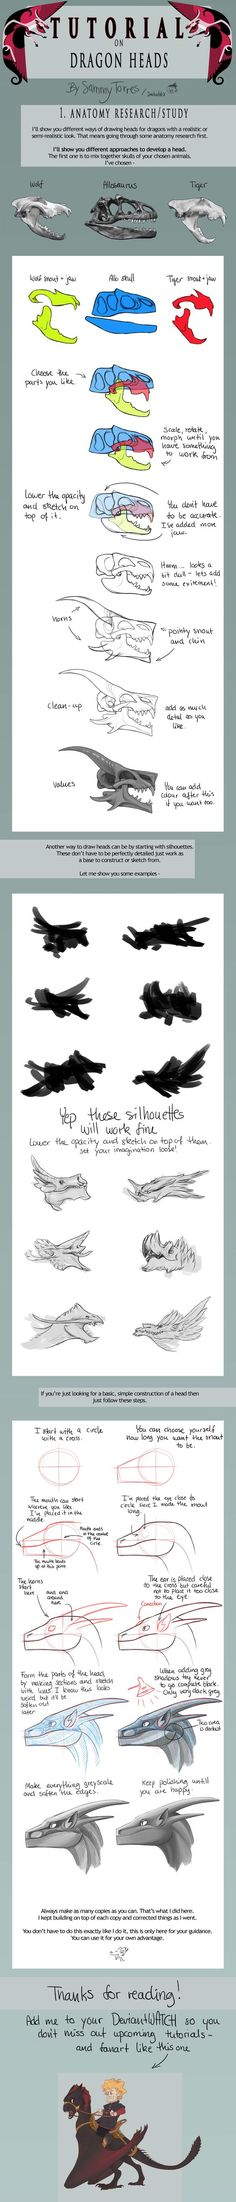 TUTORIAL: Dragon Heads by SammyTorres on deviantART: